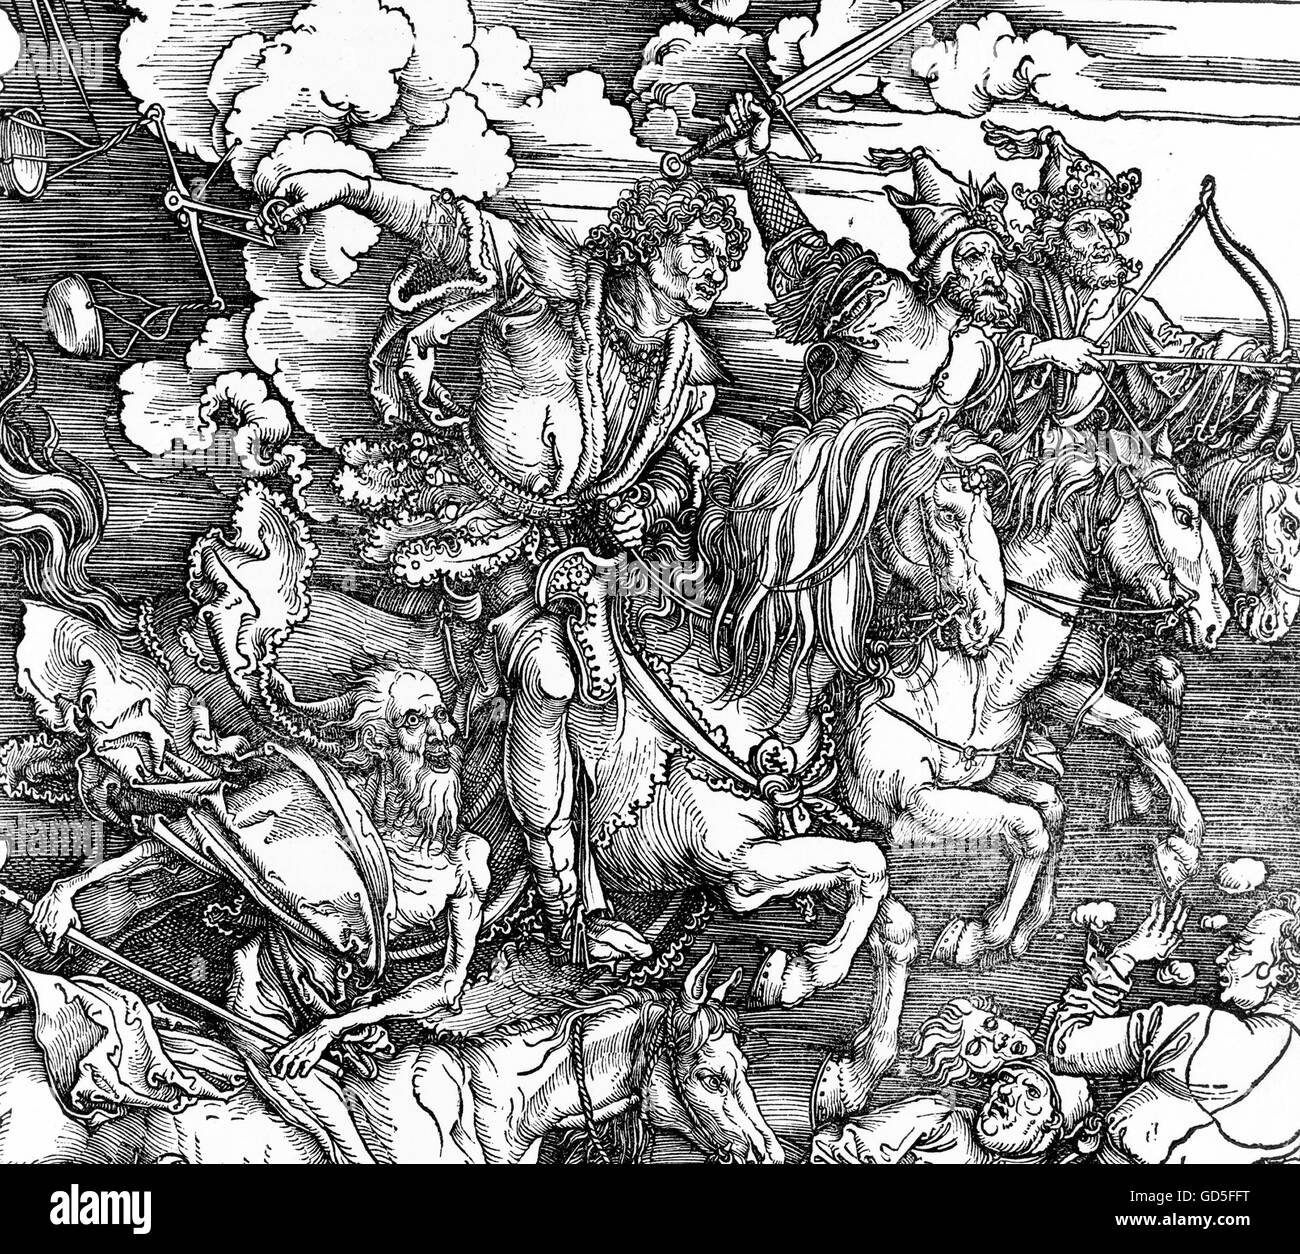 Four Horsemen of the Apocalypse by Albrecht Dürer, 1511, woodcut print.  This is a detail from a larger print, GD5FG9